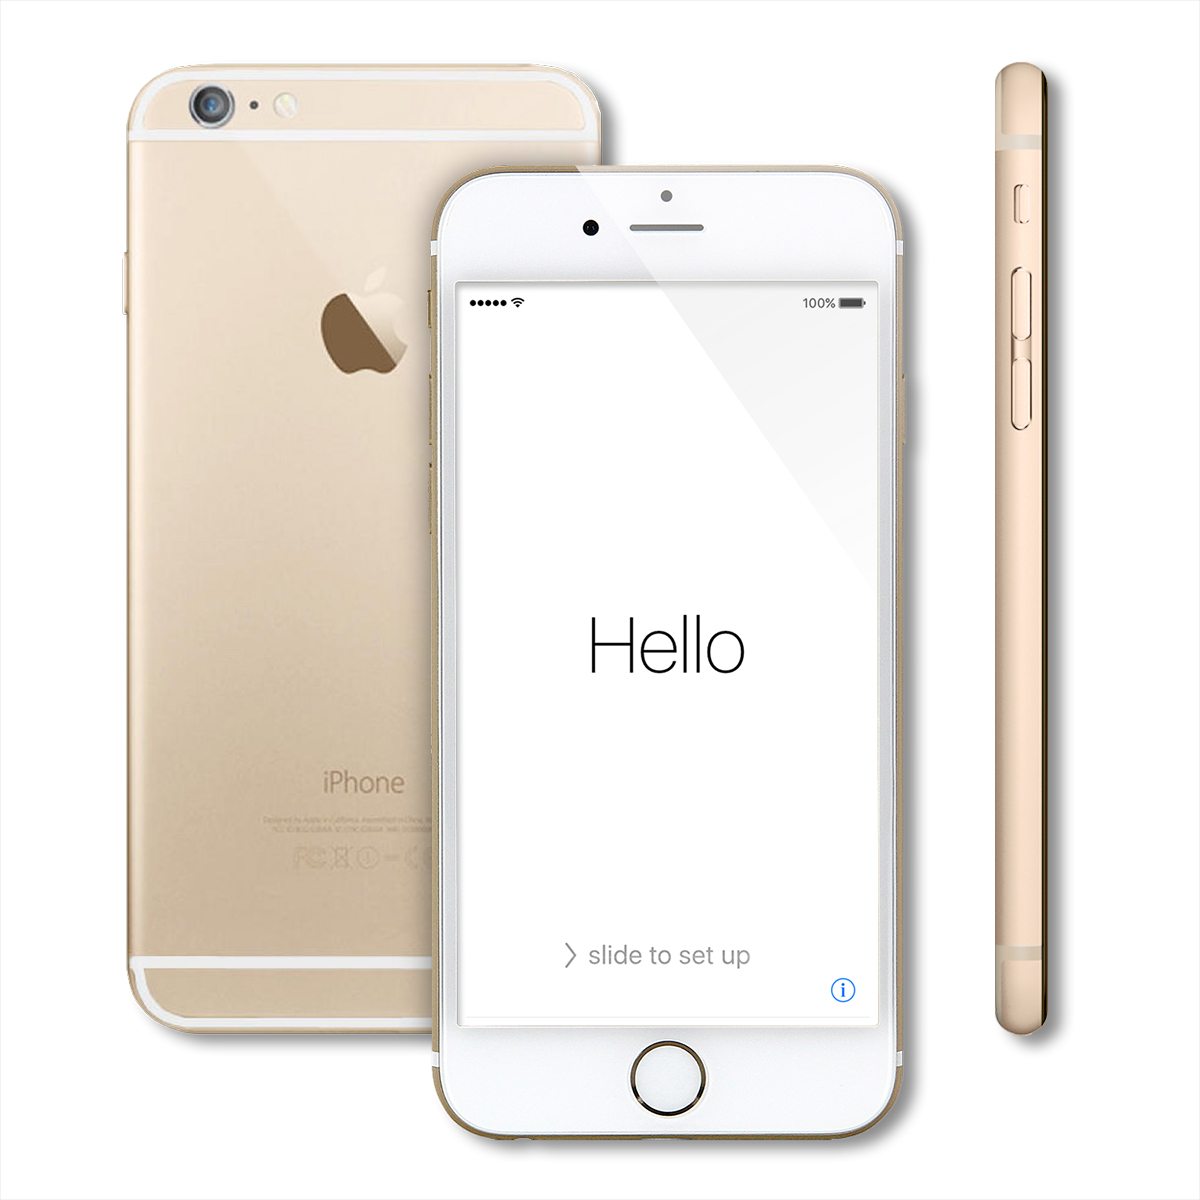 apple iphone 6 16gb apple iphone 6 16gb smartphone gsm unlocked t mobile at 2399